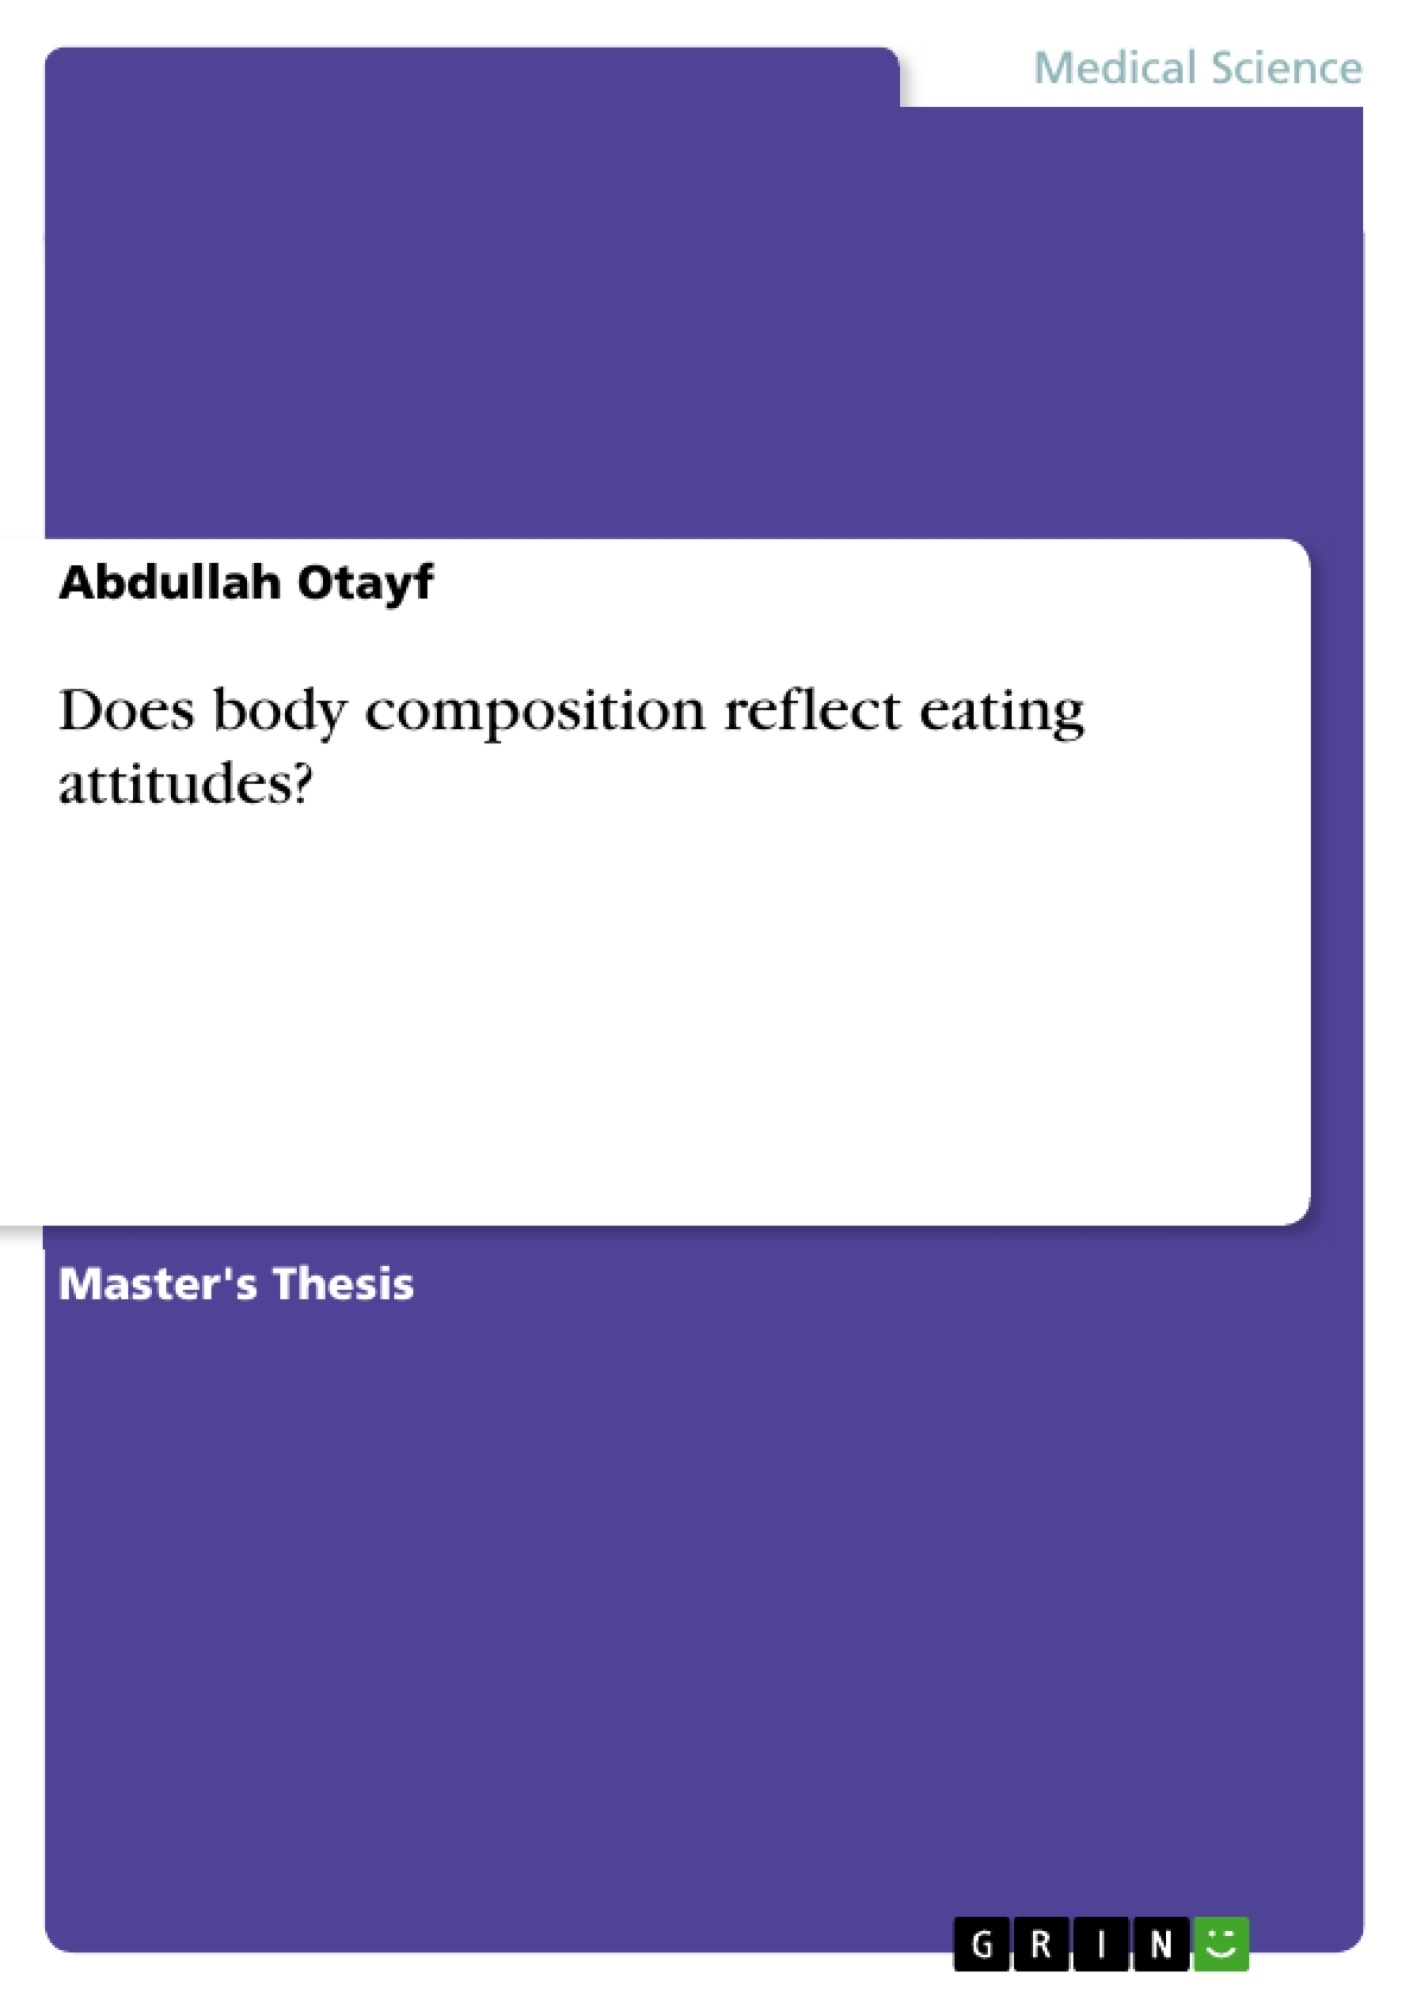 Title: Does body composition reflect eating attitudes?